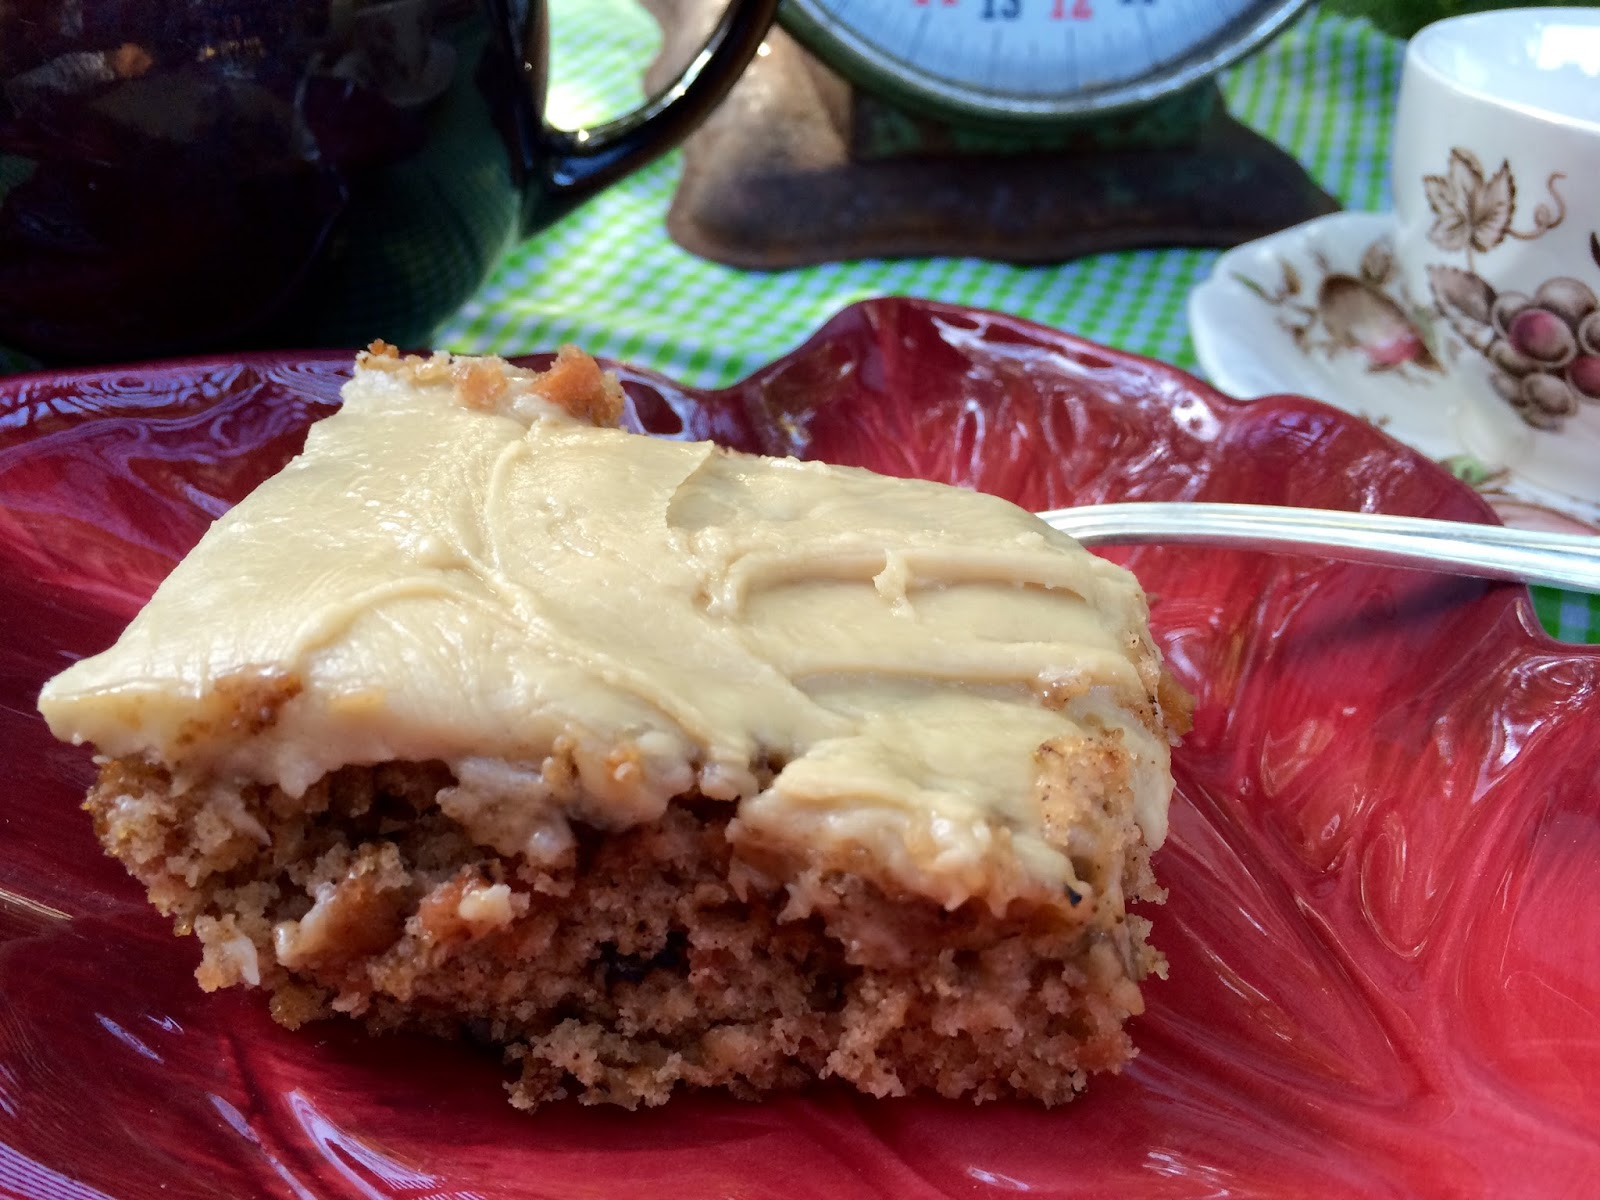 Kitty S Kozy Kitchen Old Fashioned Apple Cake With Brown Sugar Frosting